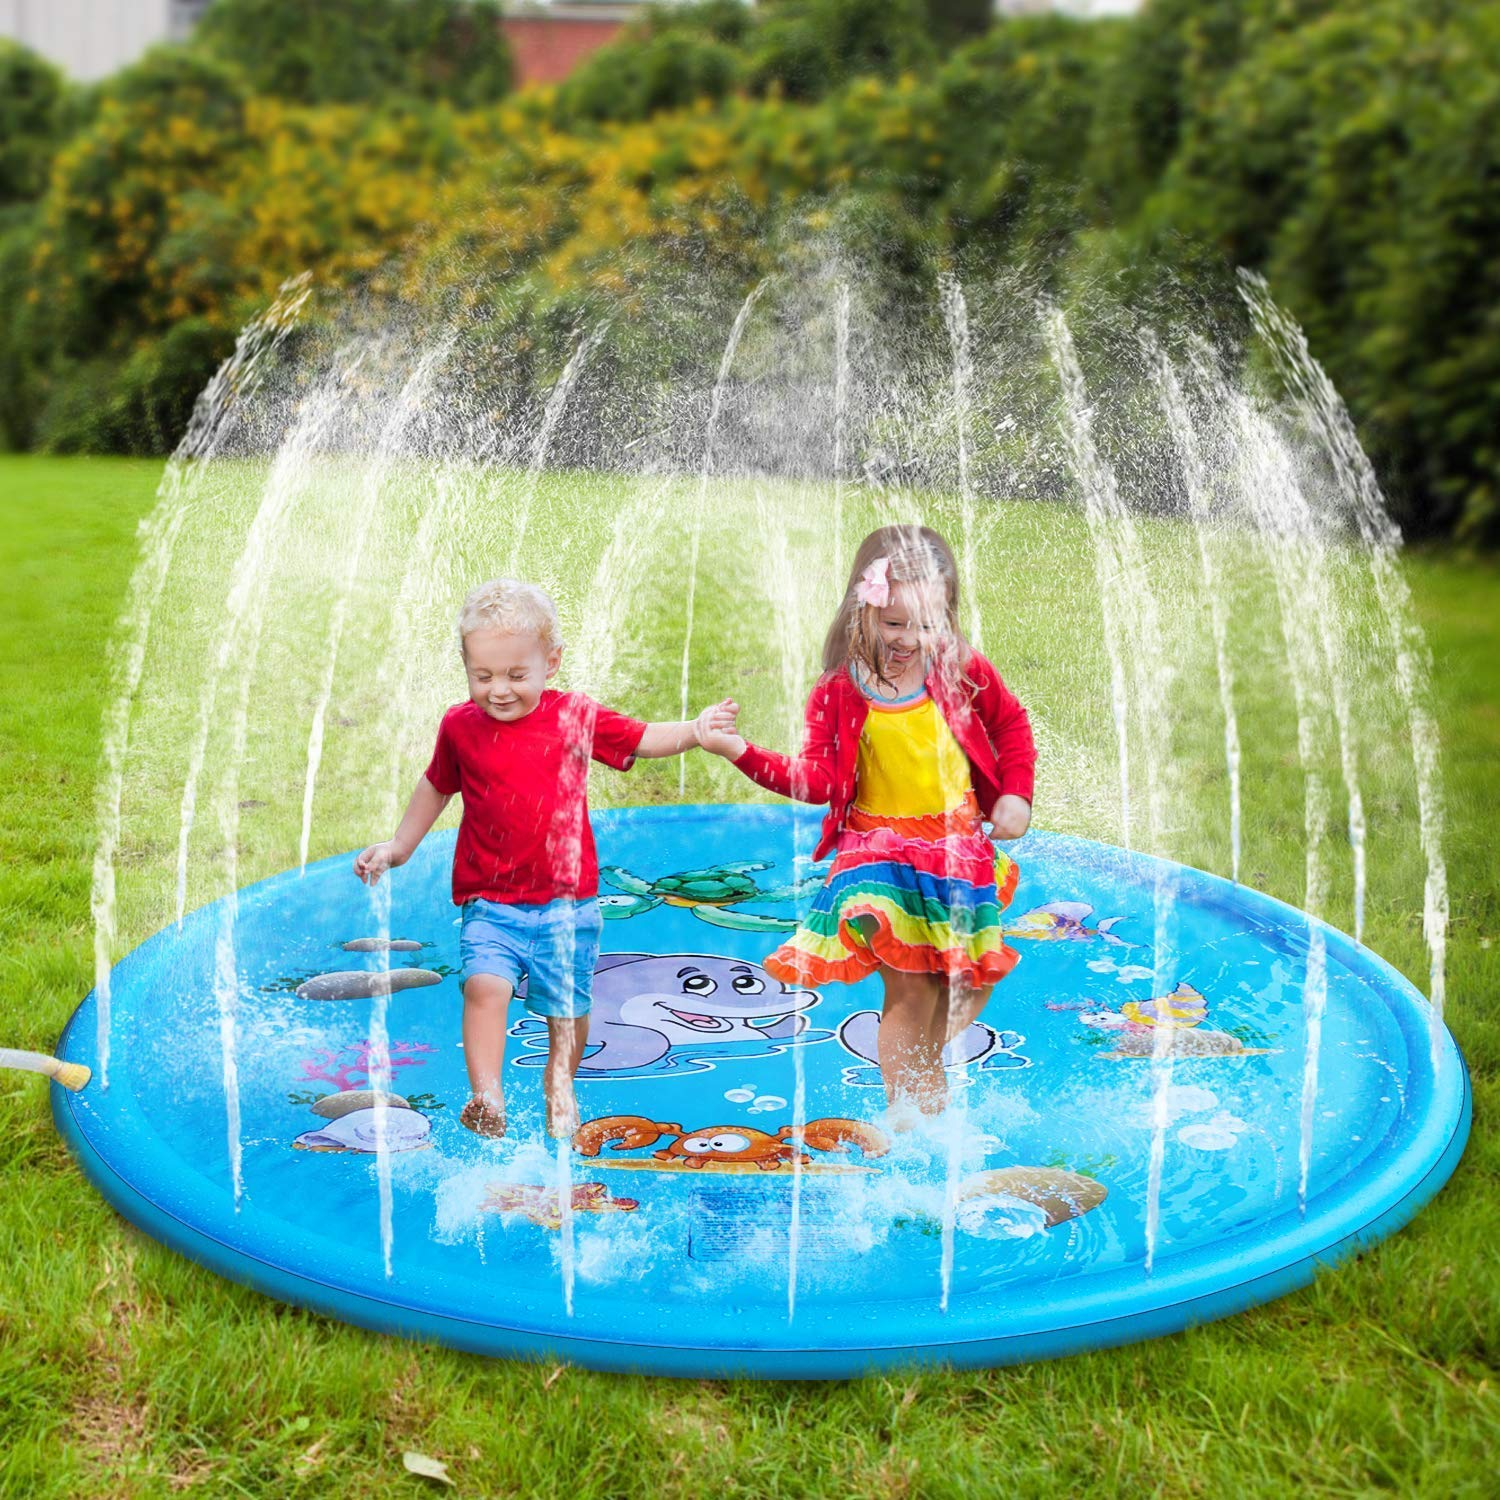 Kindsells Sprinkle and Splash Play Mat for Children Infants, Inflatable Outdoor Sprinkler Pad Summer Water Pad Toys Swimming Party Gift for Kids Toddlers Boys Girls (Blue, 68 inch)